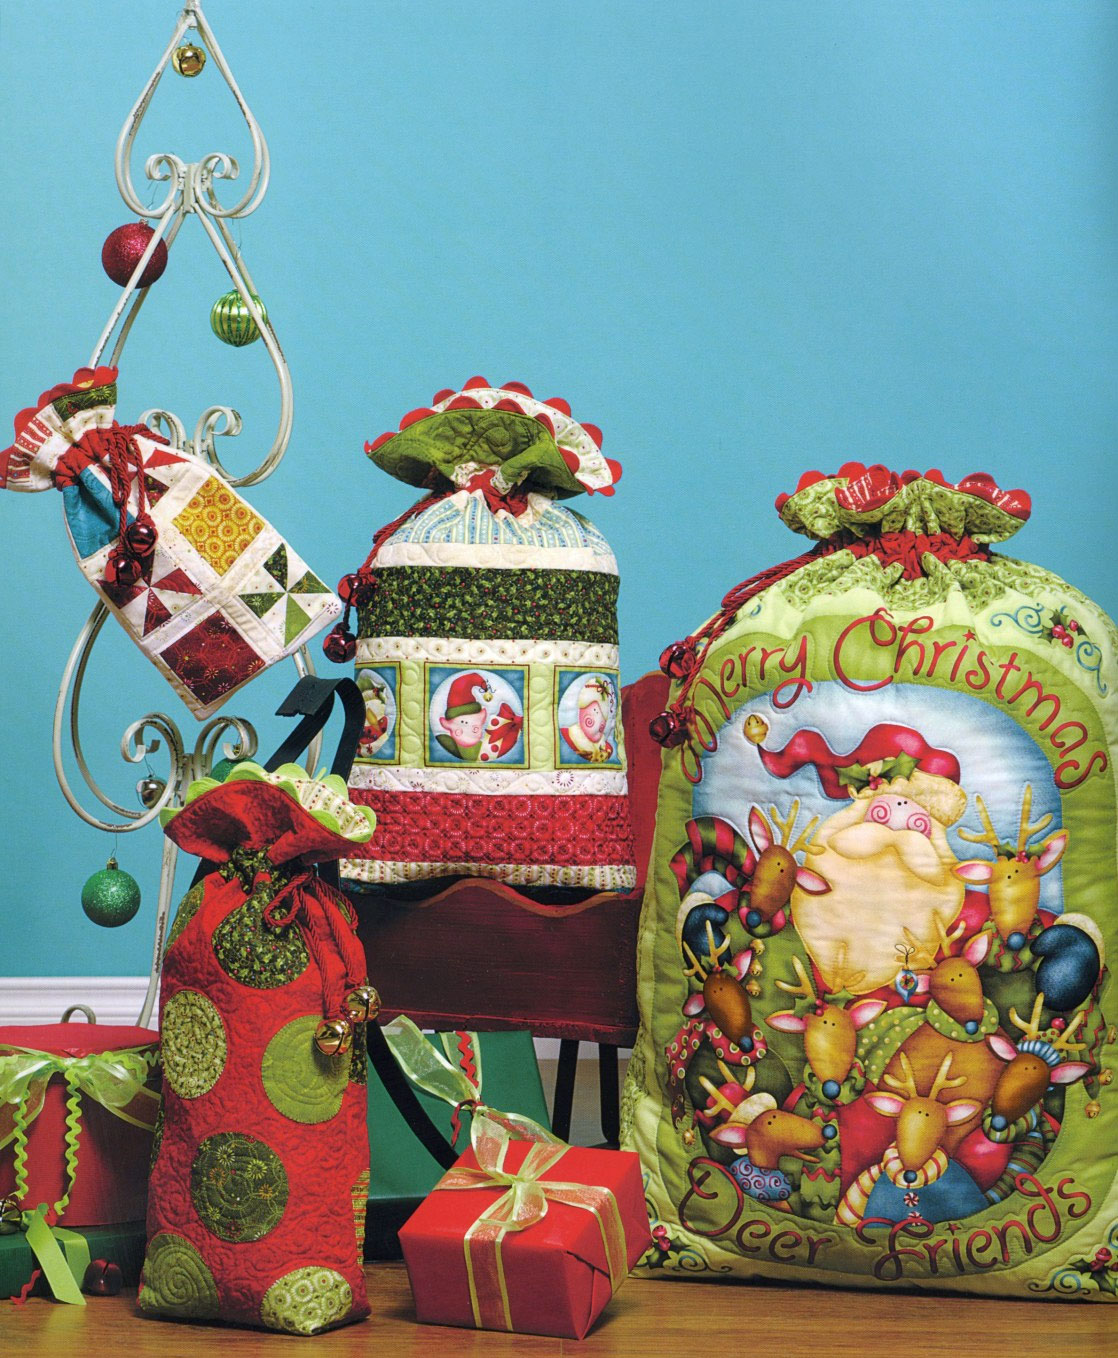 Jingle-all-the-way-sewing-pattern-Art-To-Heart-2